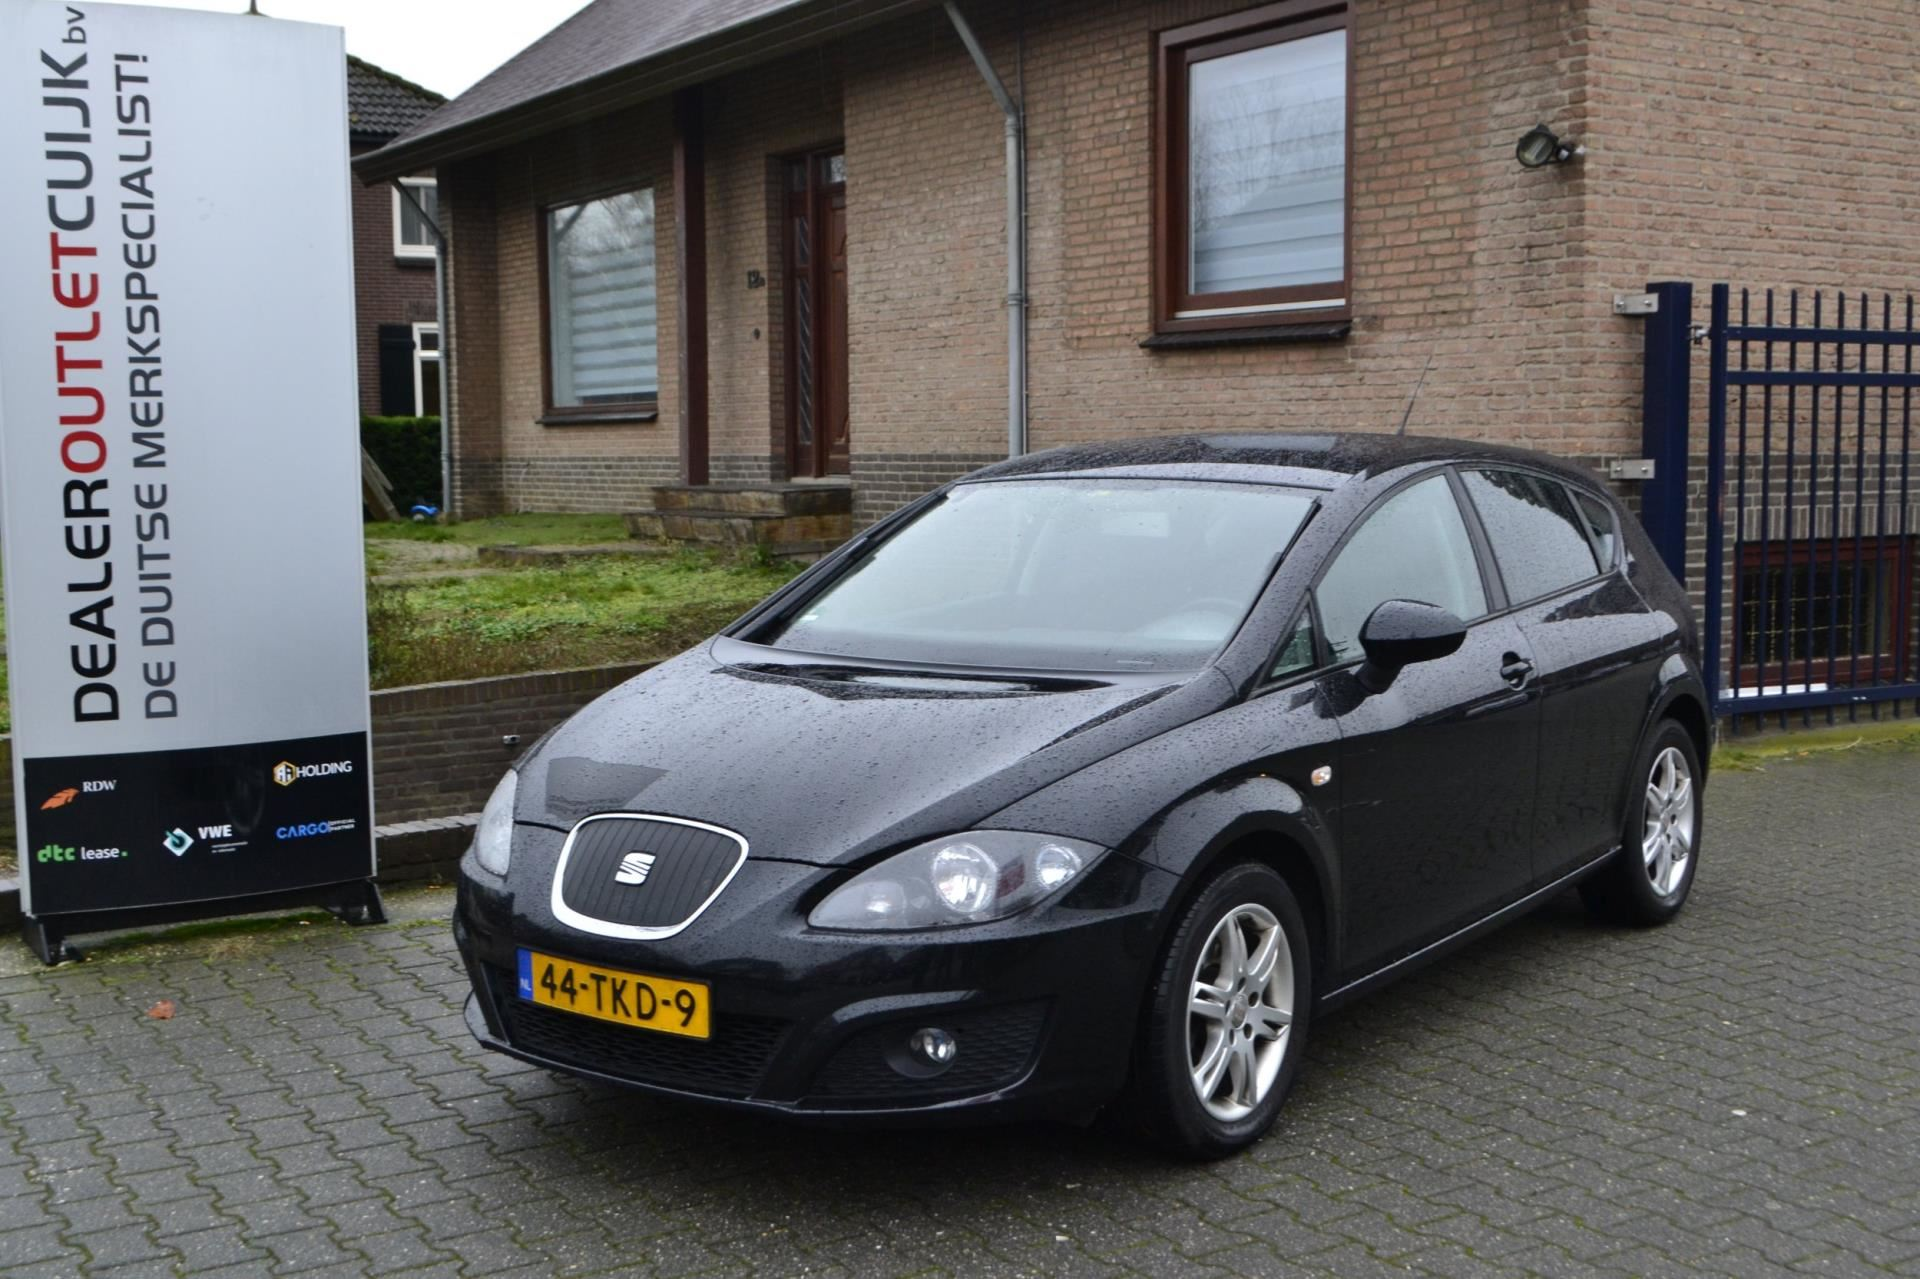 Seat Leon occasion - Dealer Outlet Cuijk b.v.